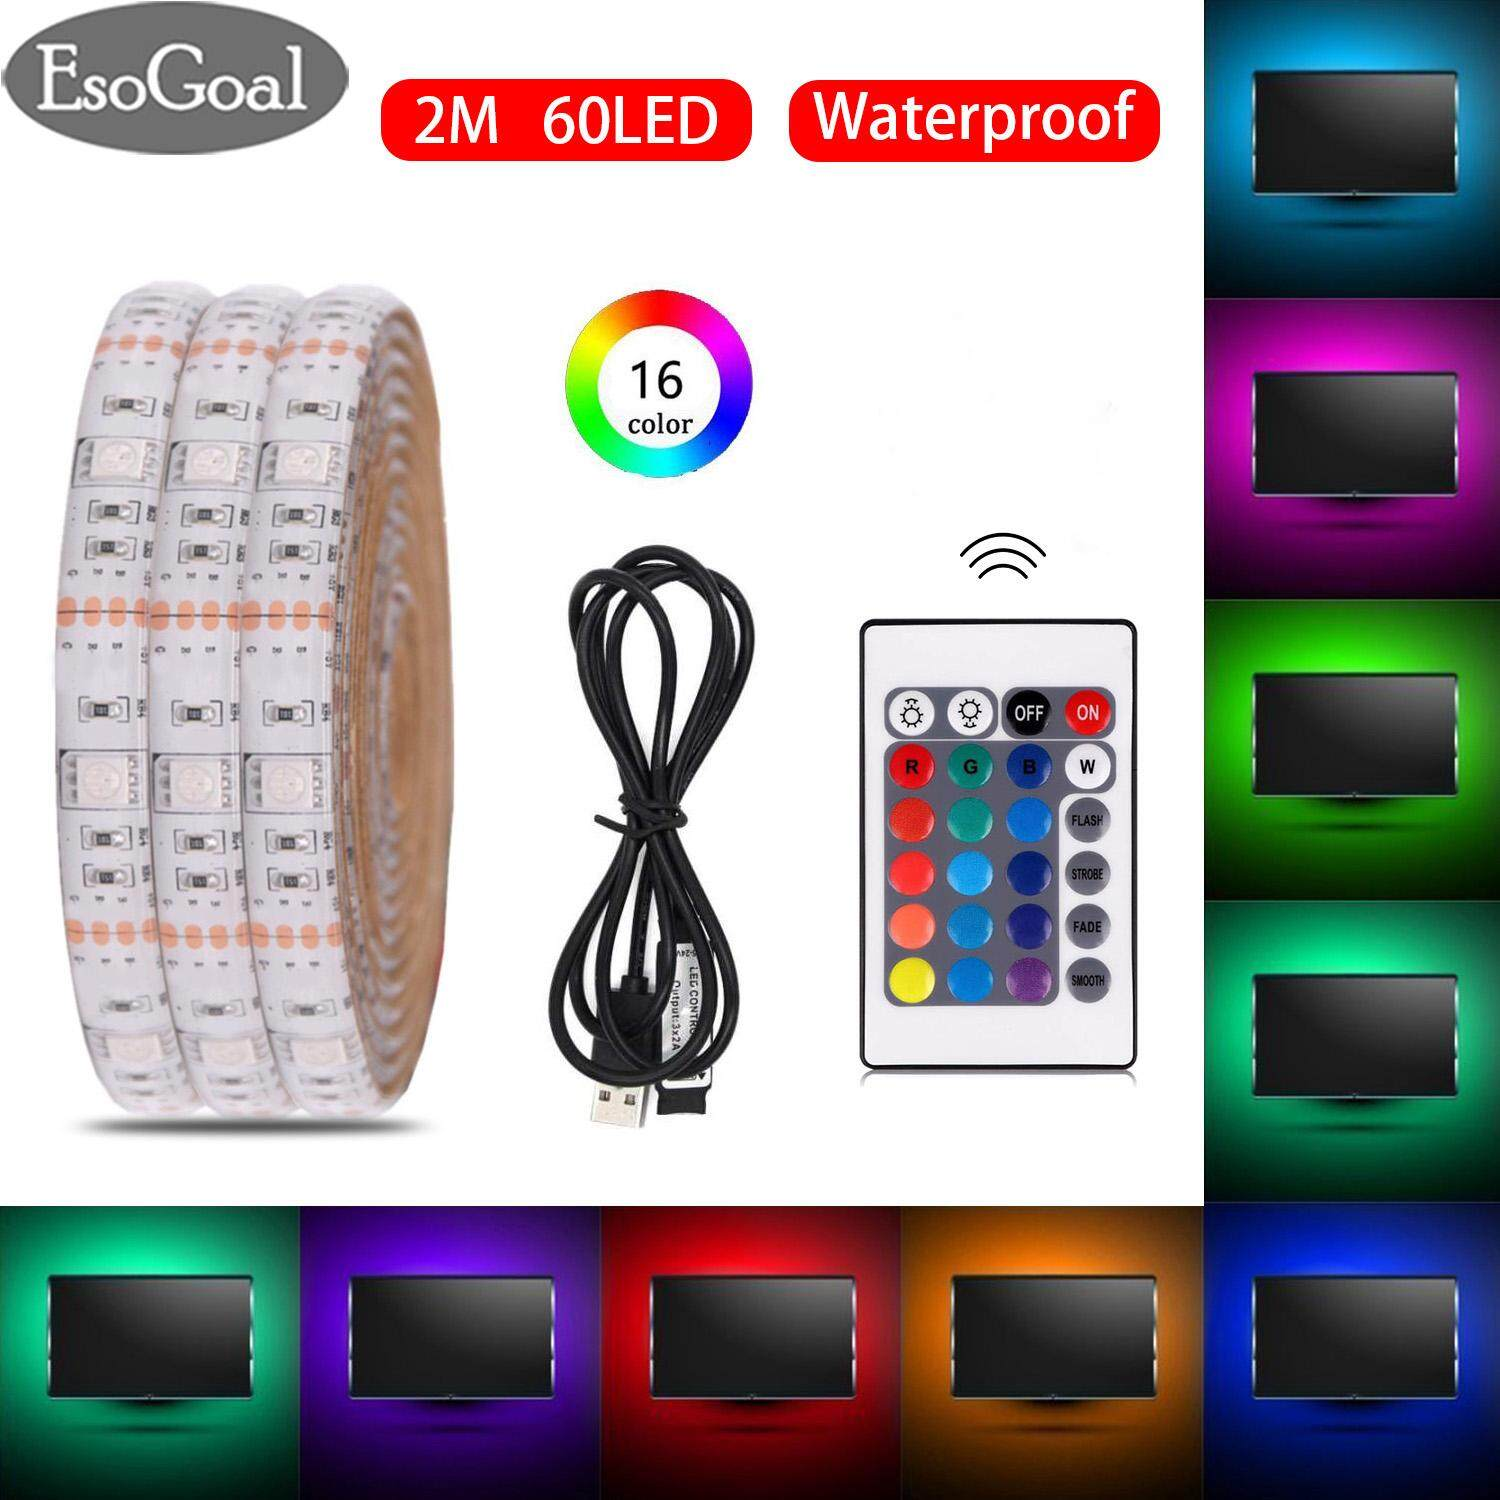 Lights For Sale Lighting Prices Brands Review In Philippines Usb Reading Lamp Circuit Esogoal Led Strip Light Rgb Waterproof Portable 5050 2m Tv Backlight Ip65 60leds